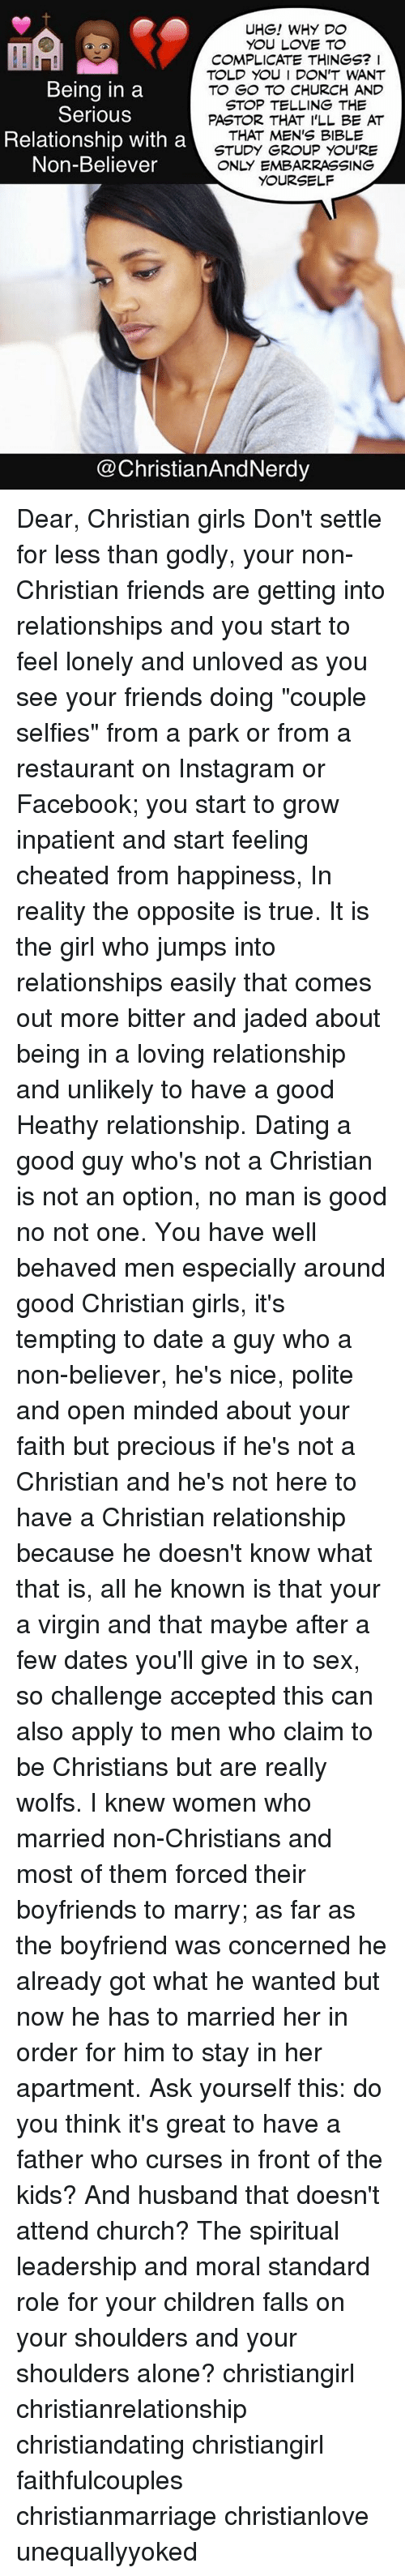 How to not make christian dating so serious